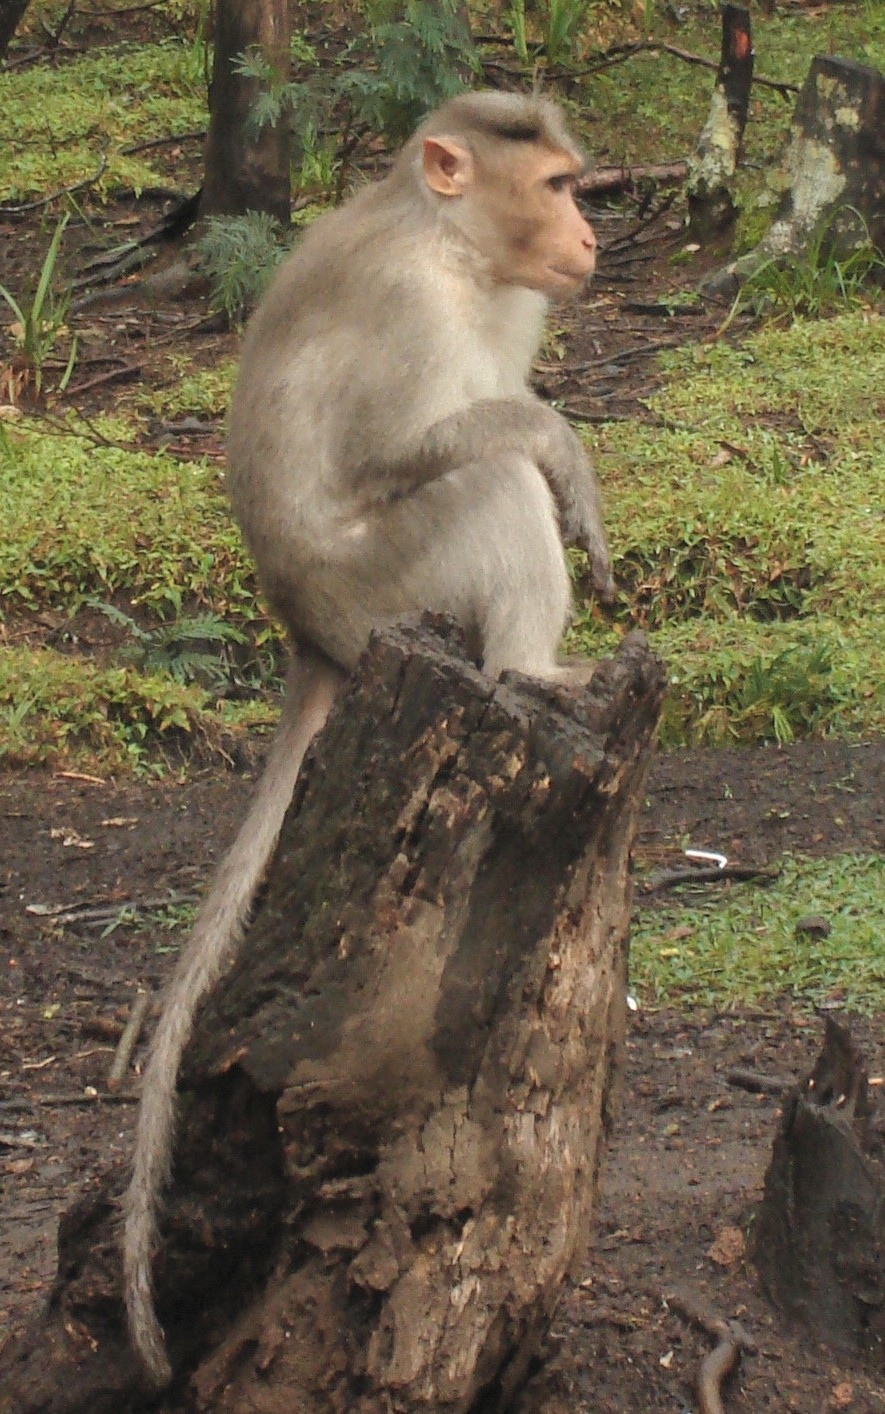 long-tailed macaque - Wiktionary